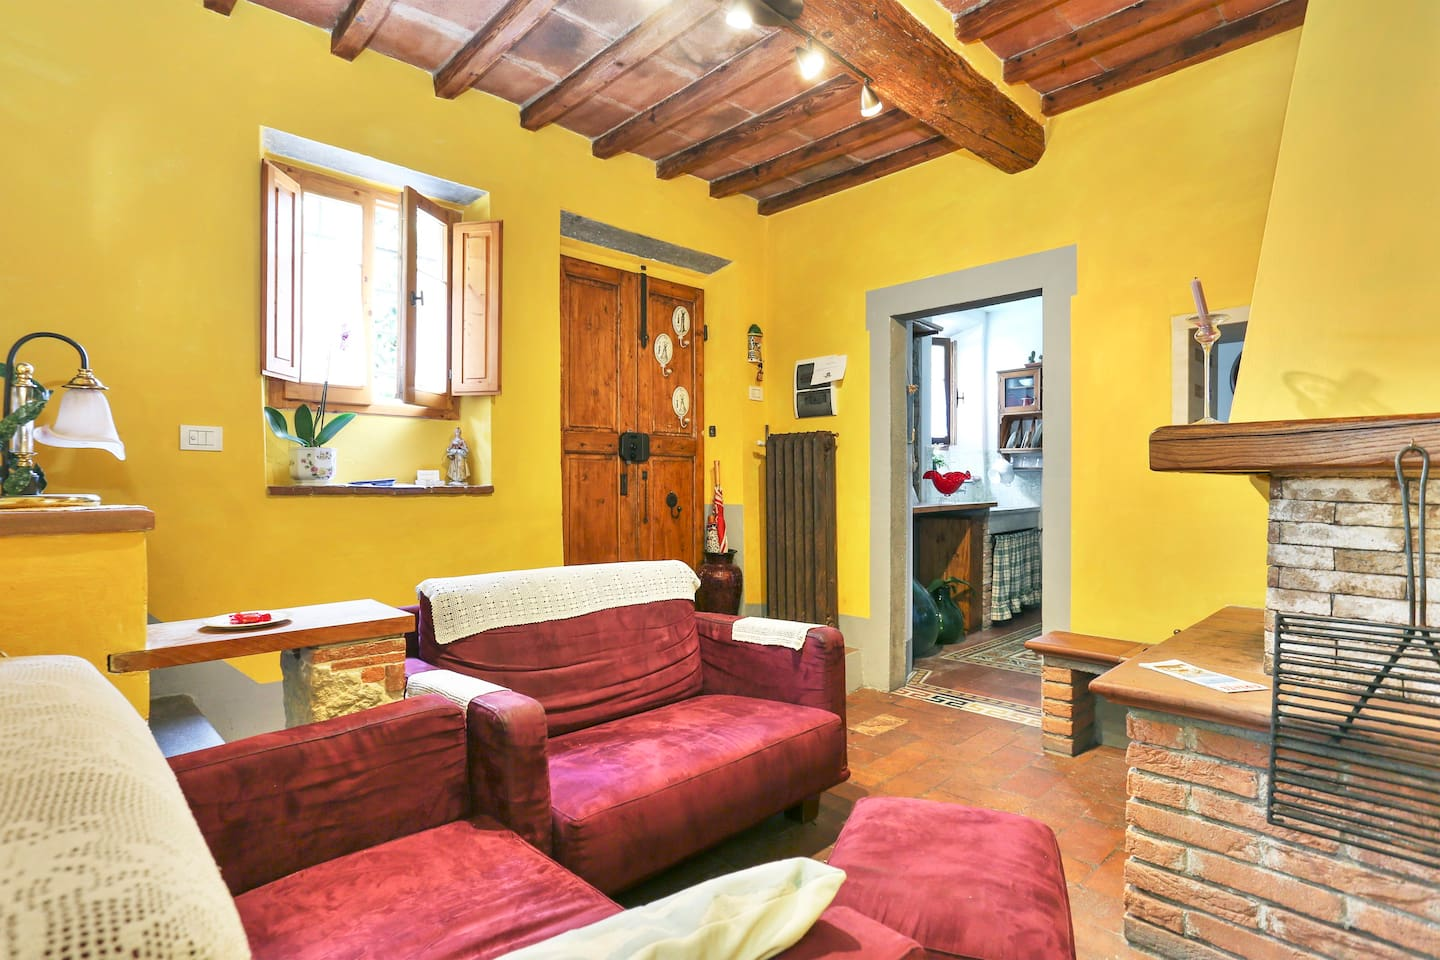 First floor living room fireplace with exposed beams. Salotto con camino, cotto e travi a vista